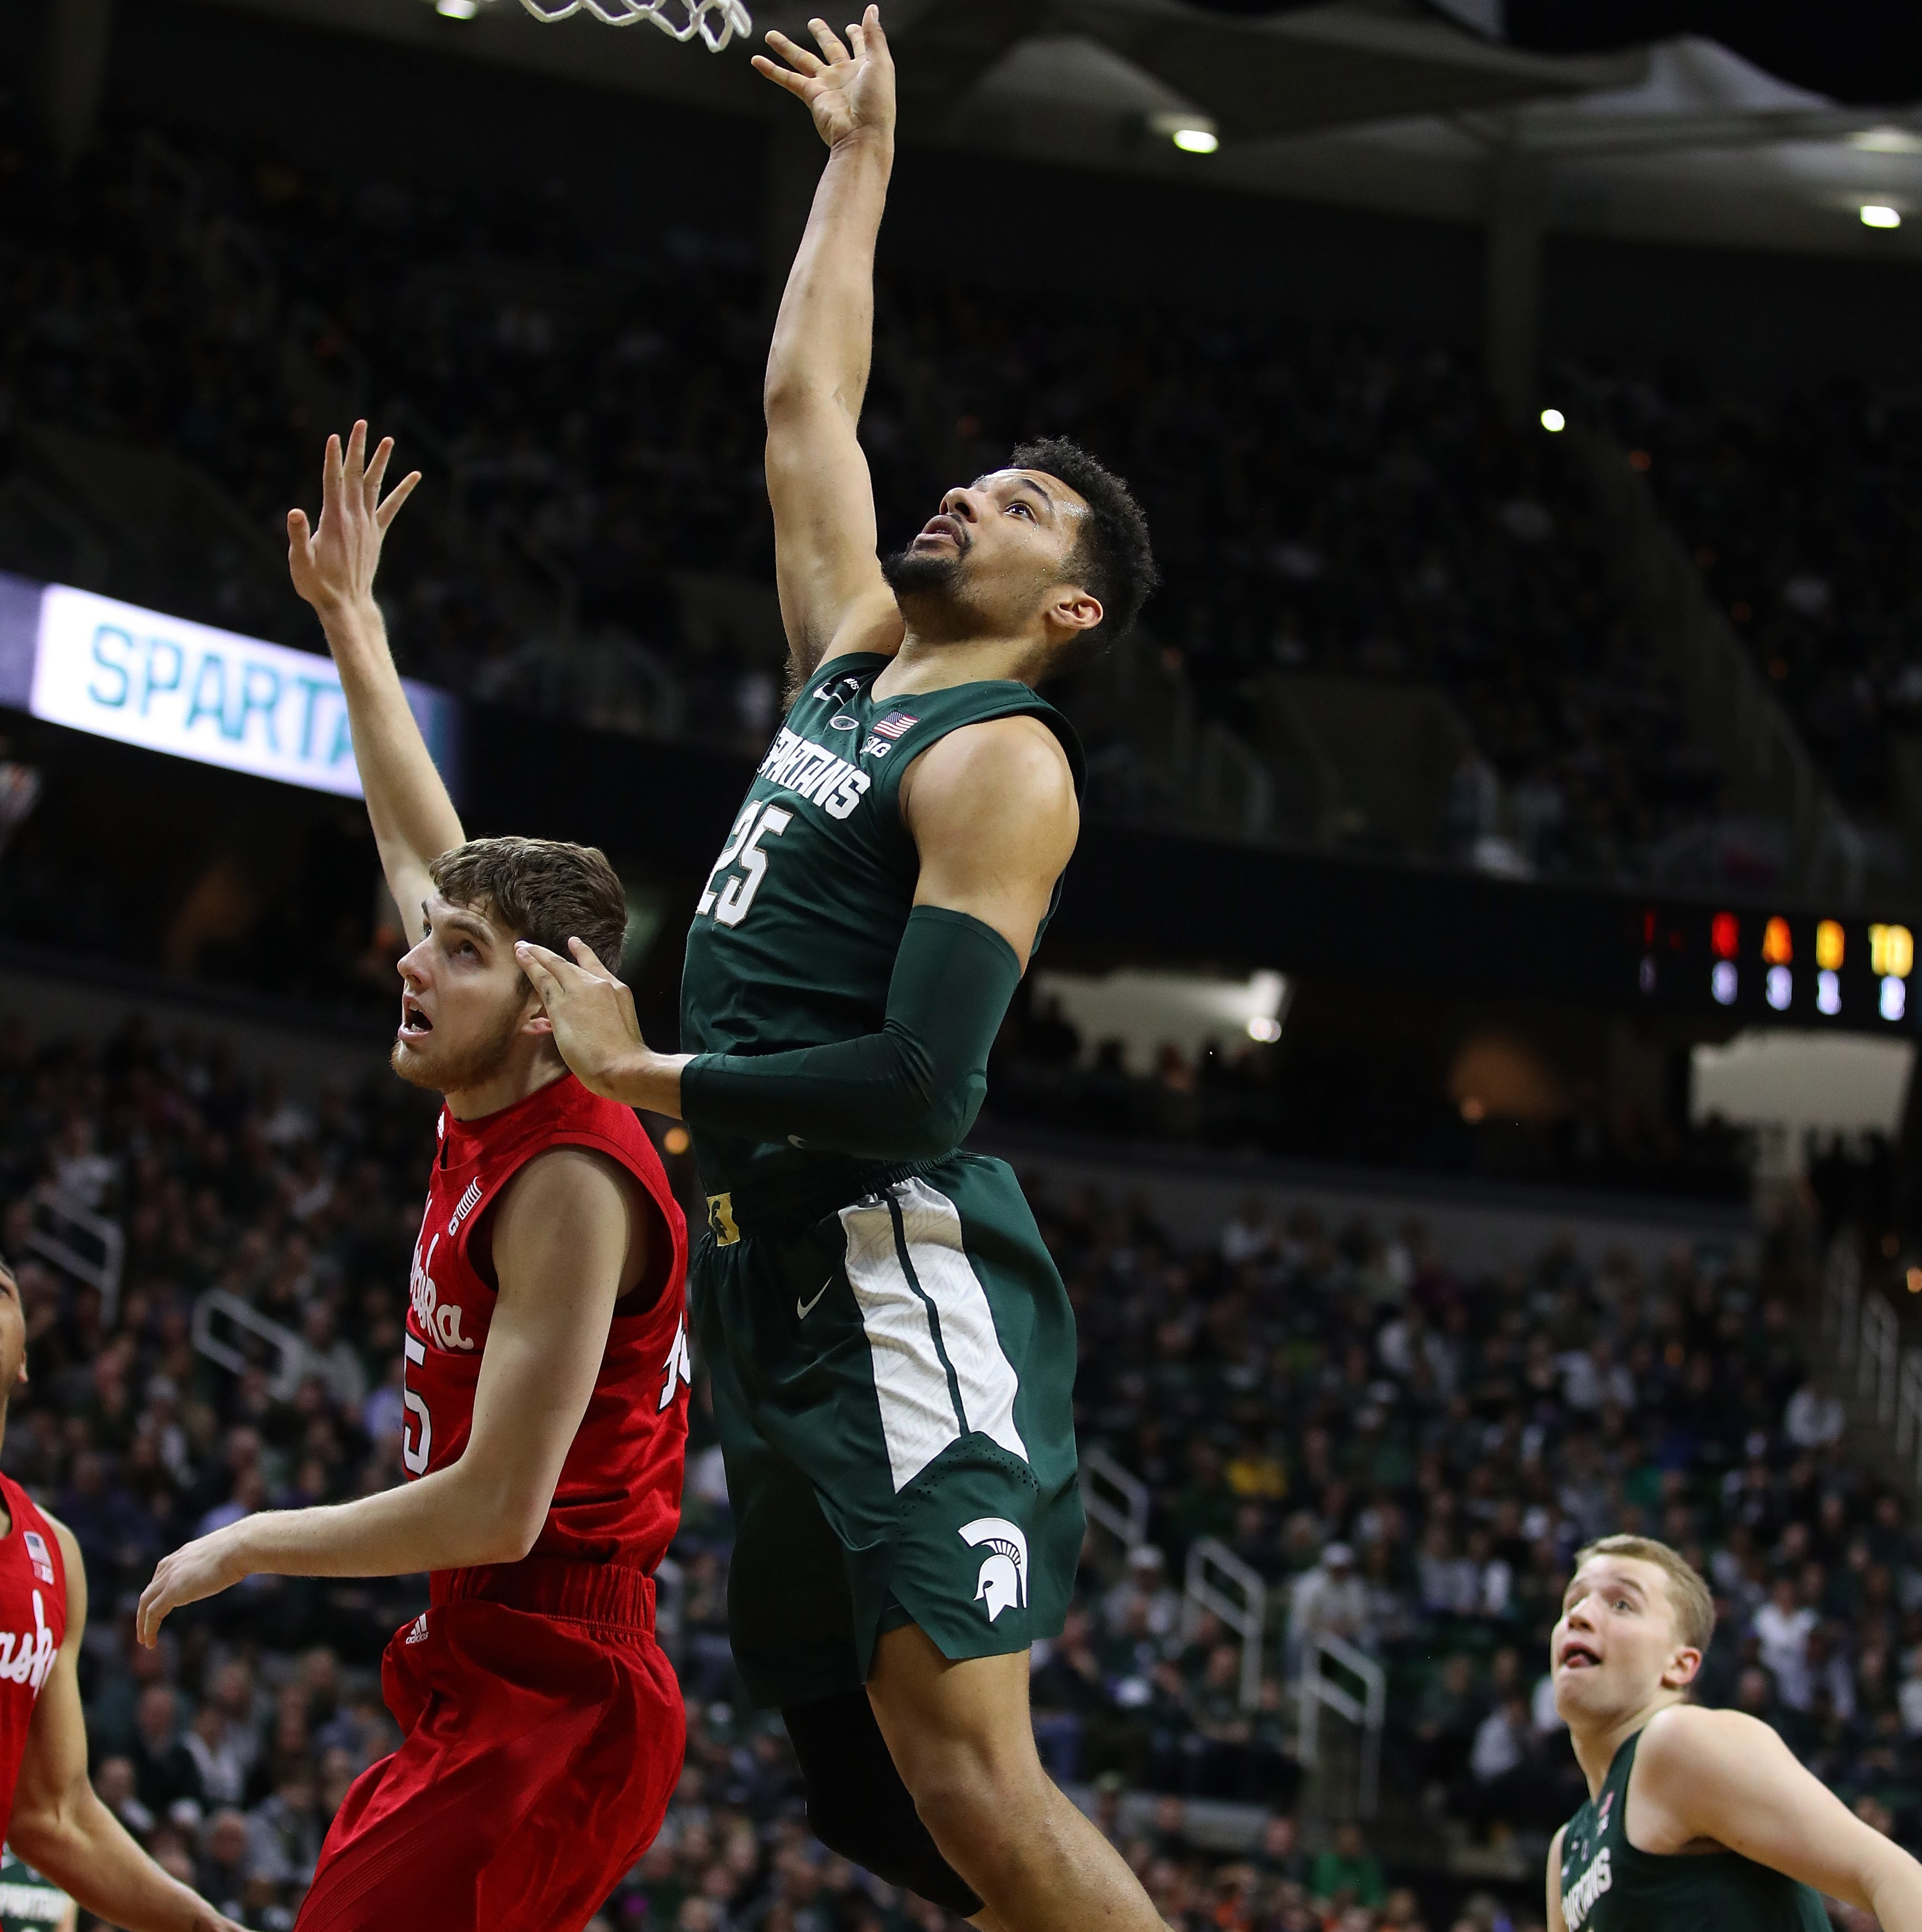 Seniors star in Michigan State's romp over Nebraska; Michigan up next with Big Ten title on line